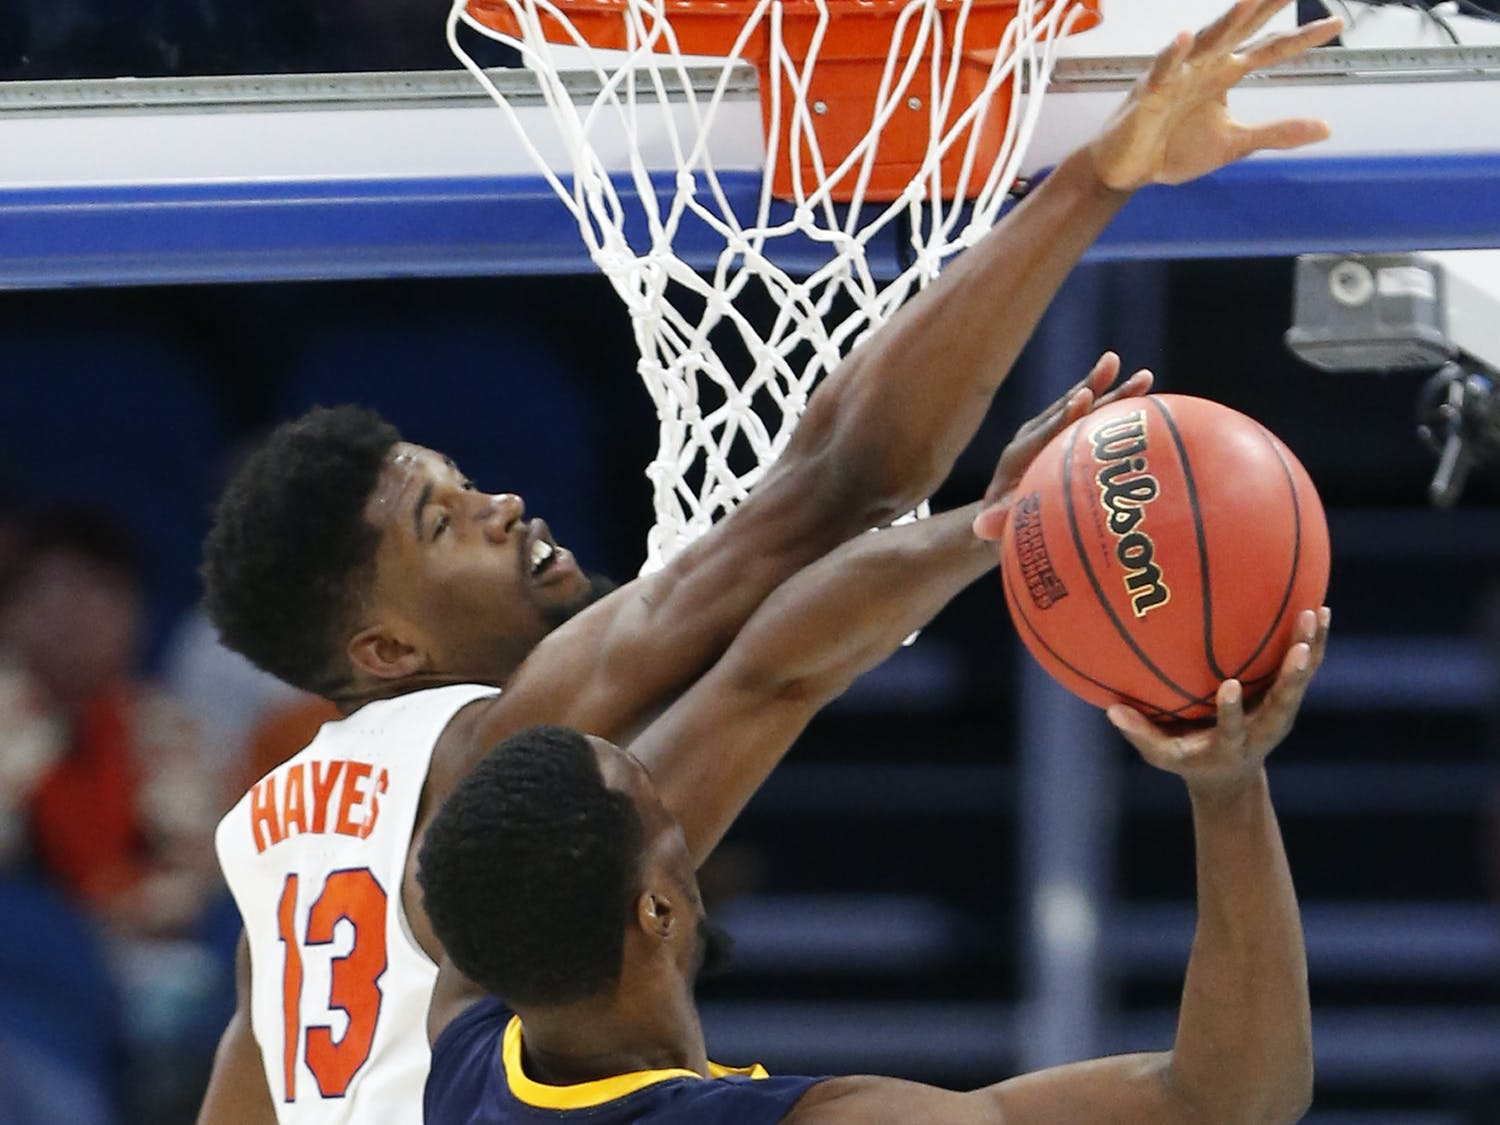 Florida forward Kevarrius Hayes (13) blocks a shot by East Tennessee State forward Tevin Glass (40) during the second half of the first round of the NCAA college basketball tournament, Thursday, March 16, 2017 in Orlando, Fla. Florida defeated ETSU 80-65. (AP Photo/Wilfredo Lee)